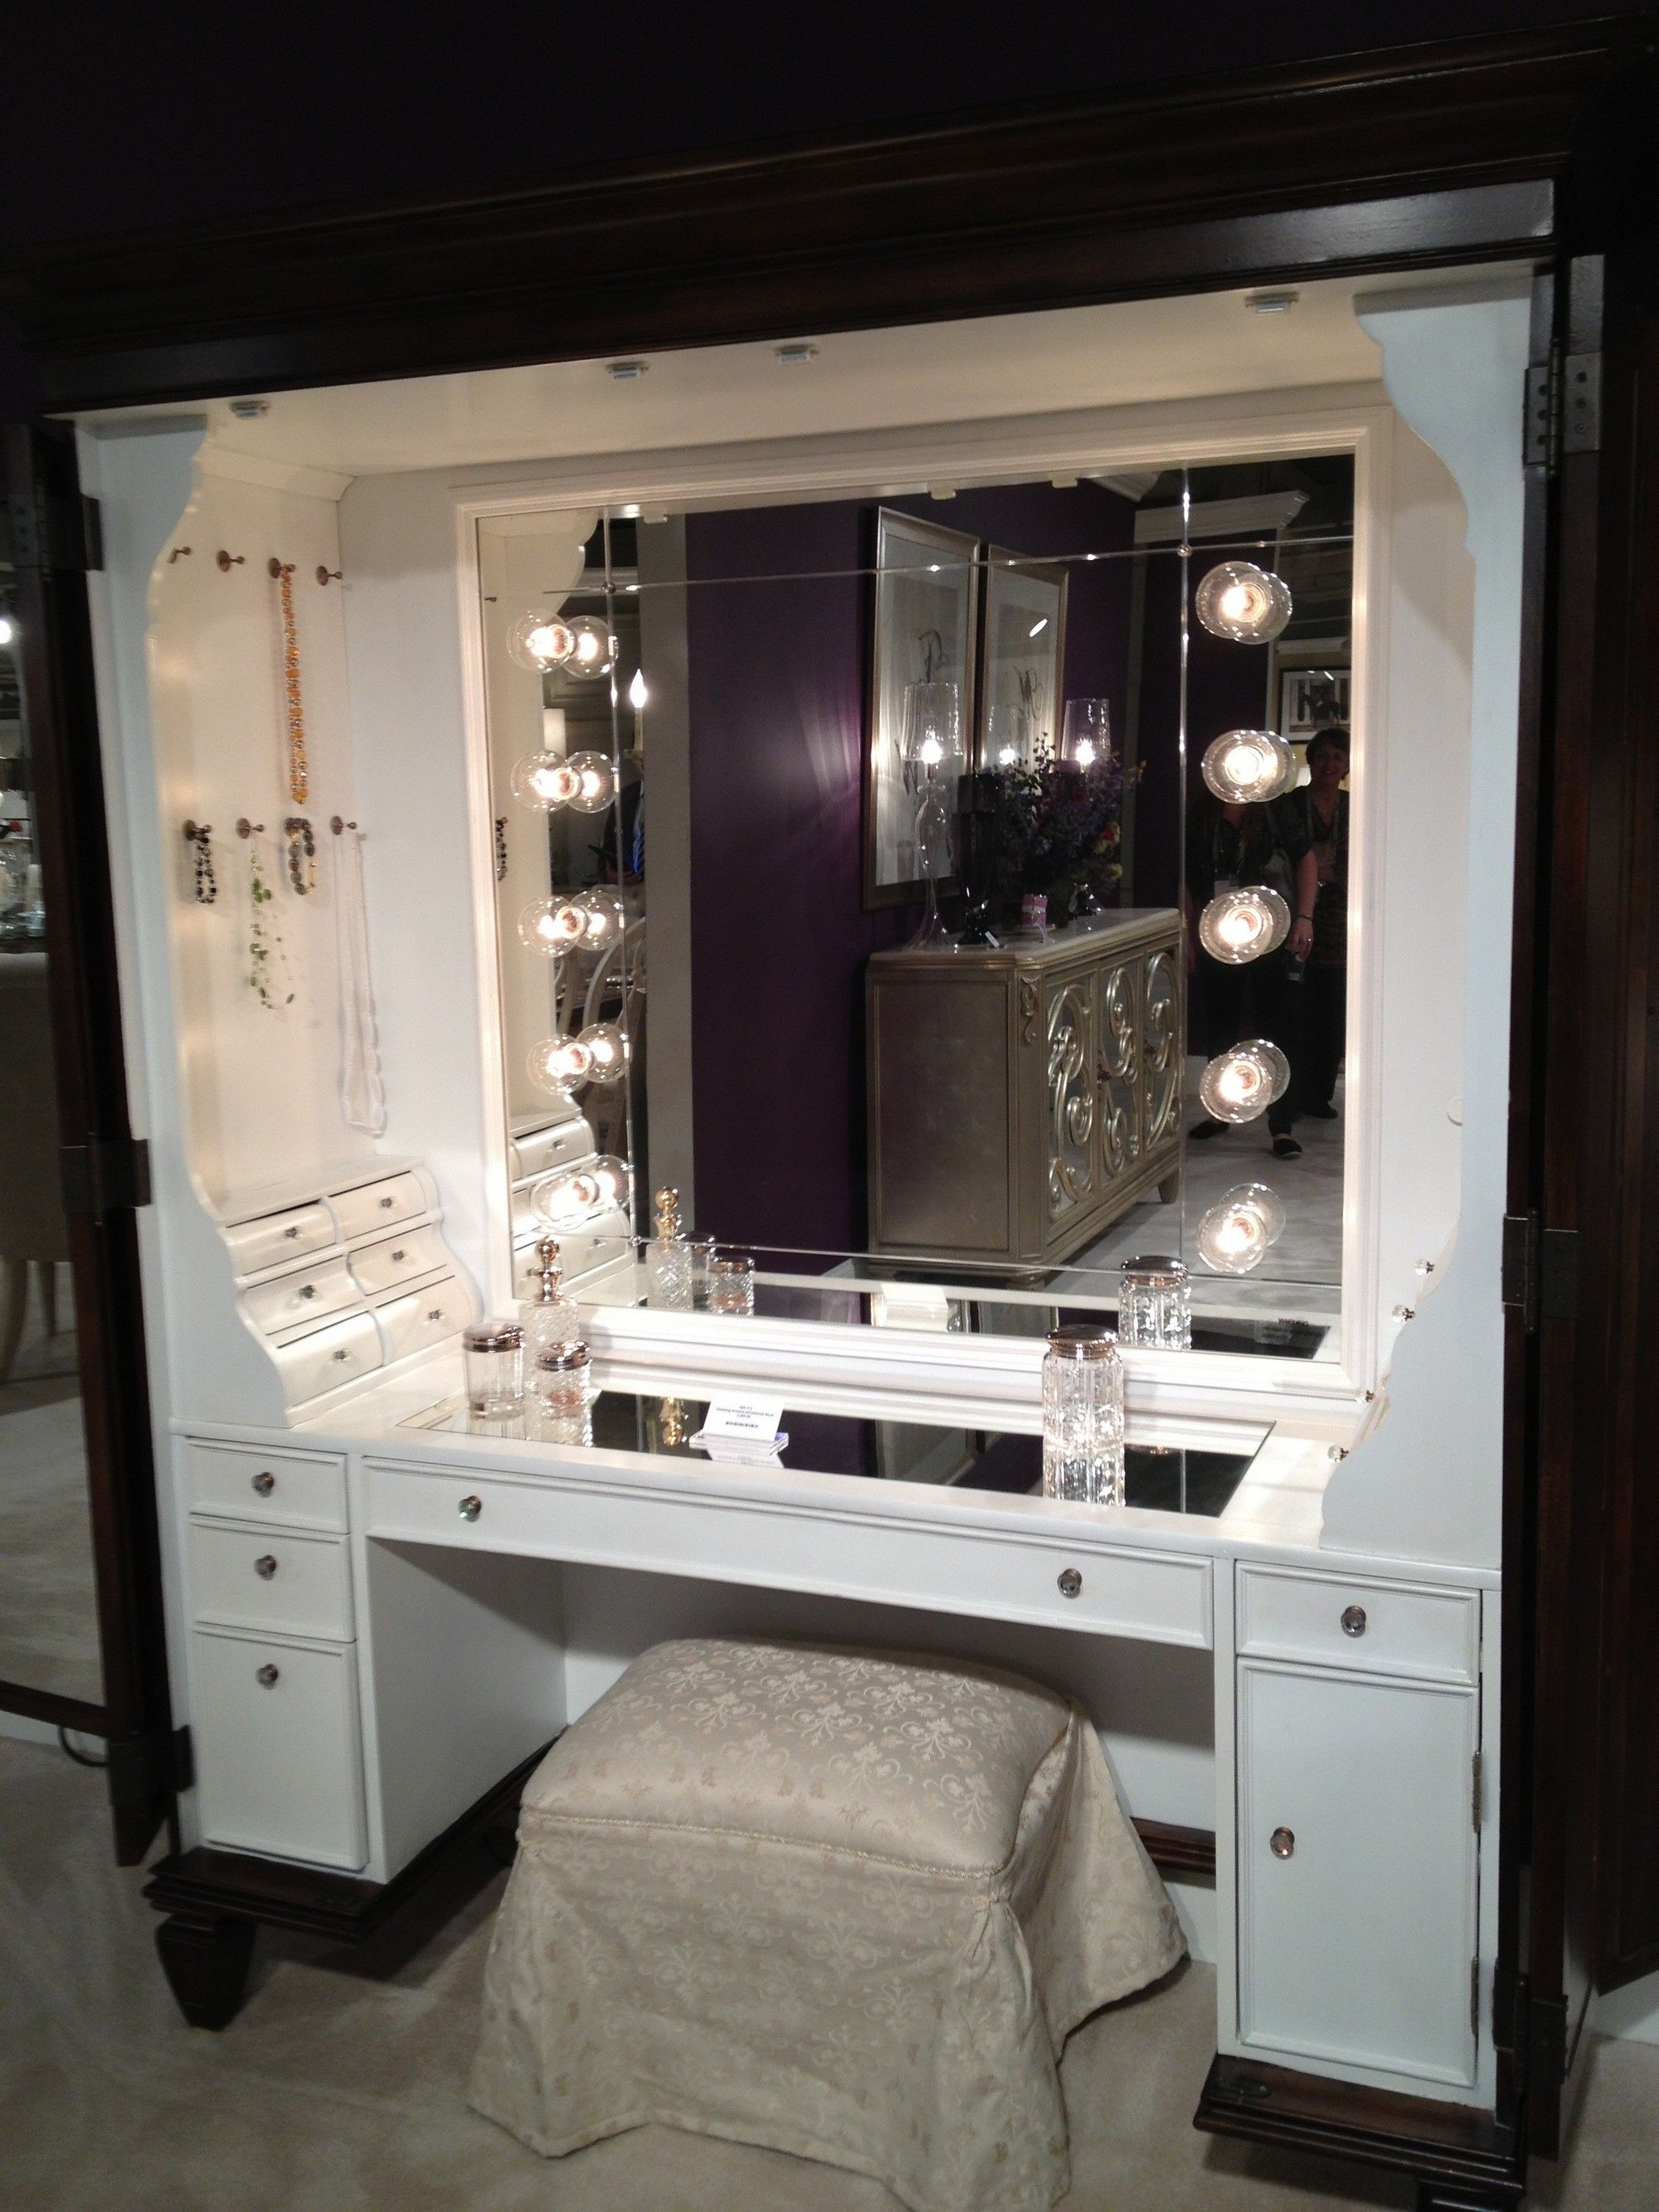 Bedroom dressing table with mirror - Furniture Black Makeup Table With Lighted Mirror And Small Fabric Bench Show Perfect Beauty